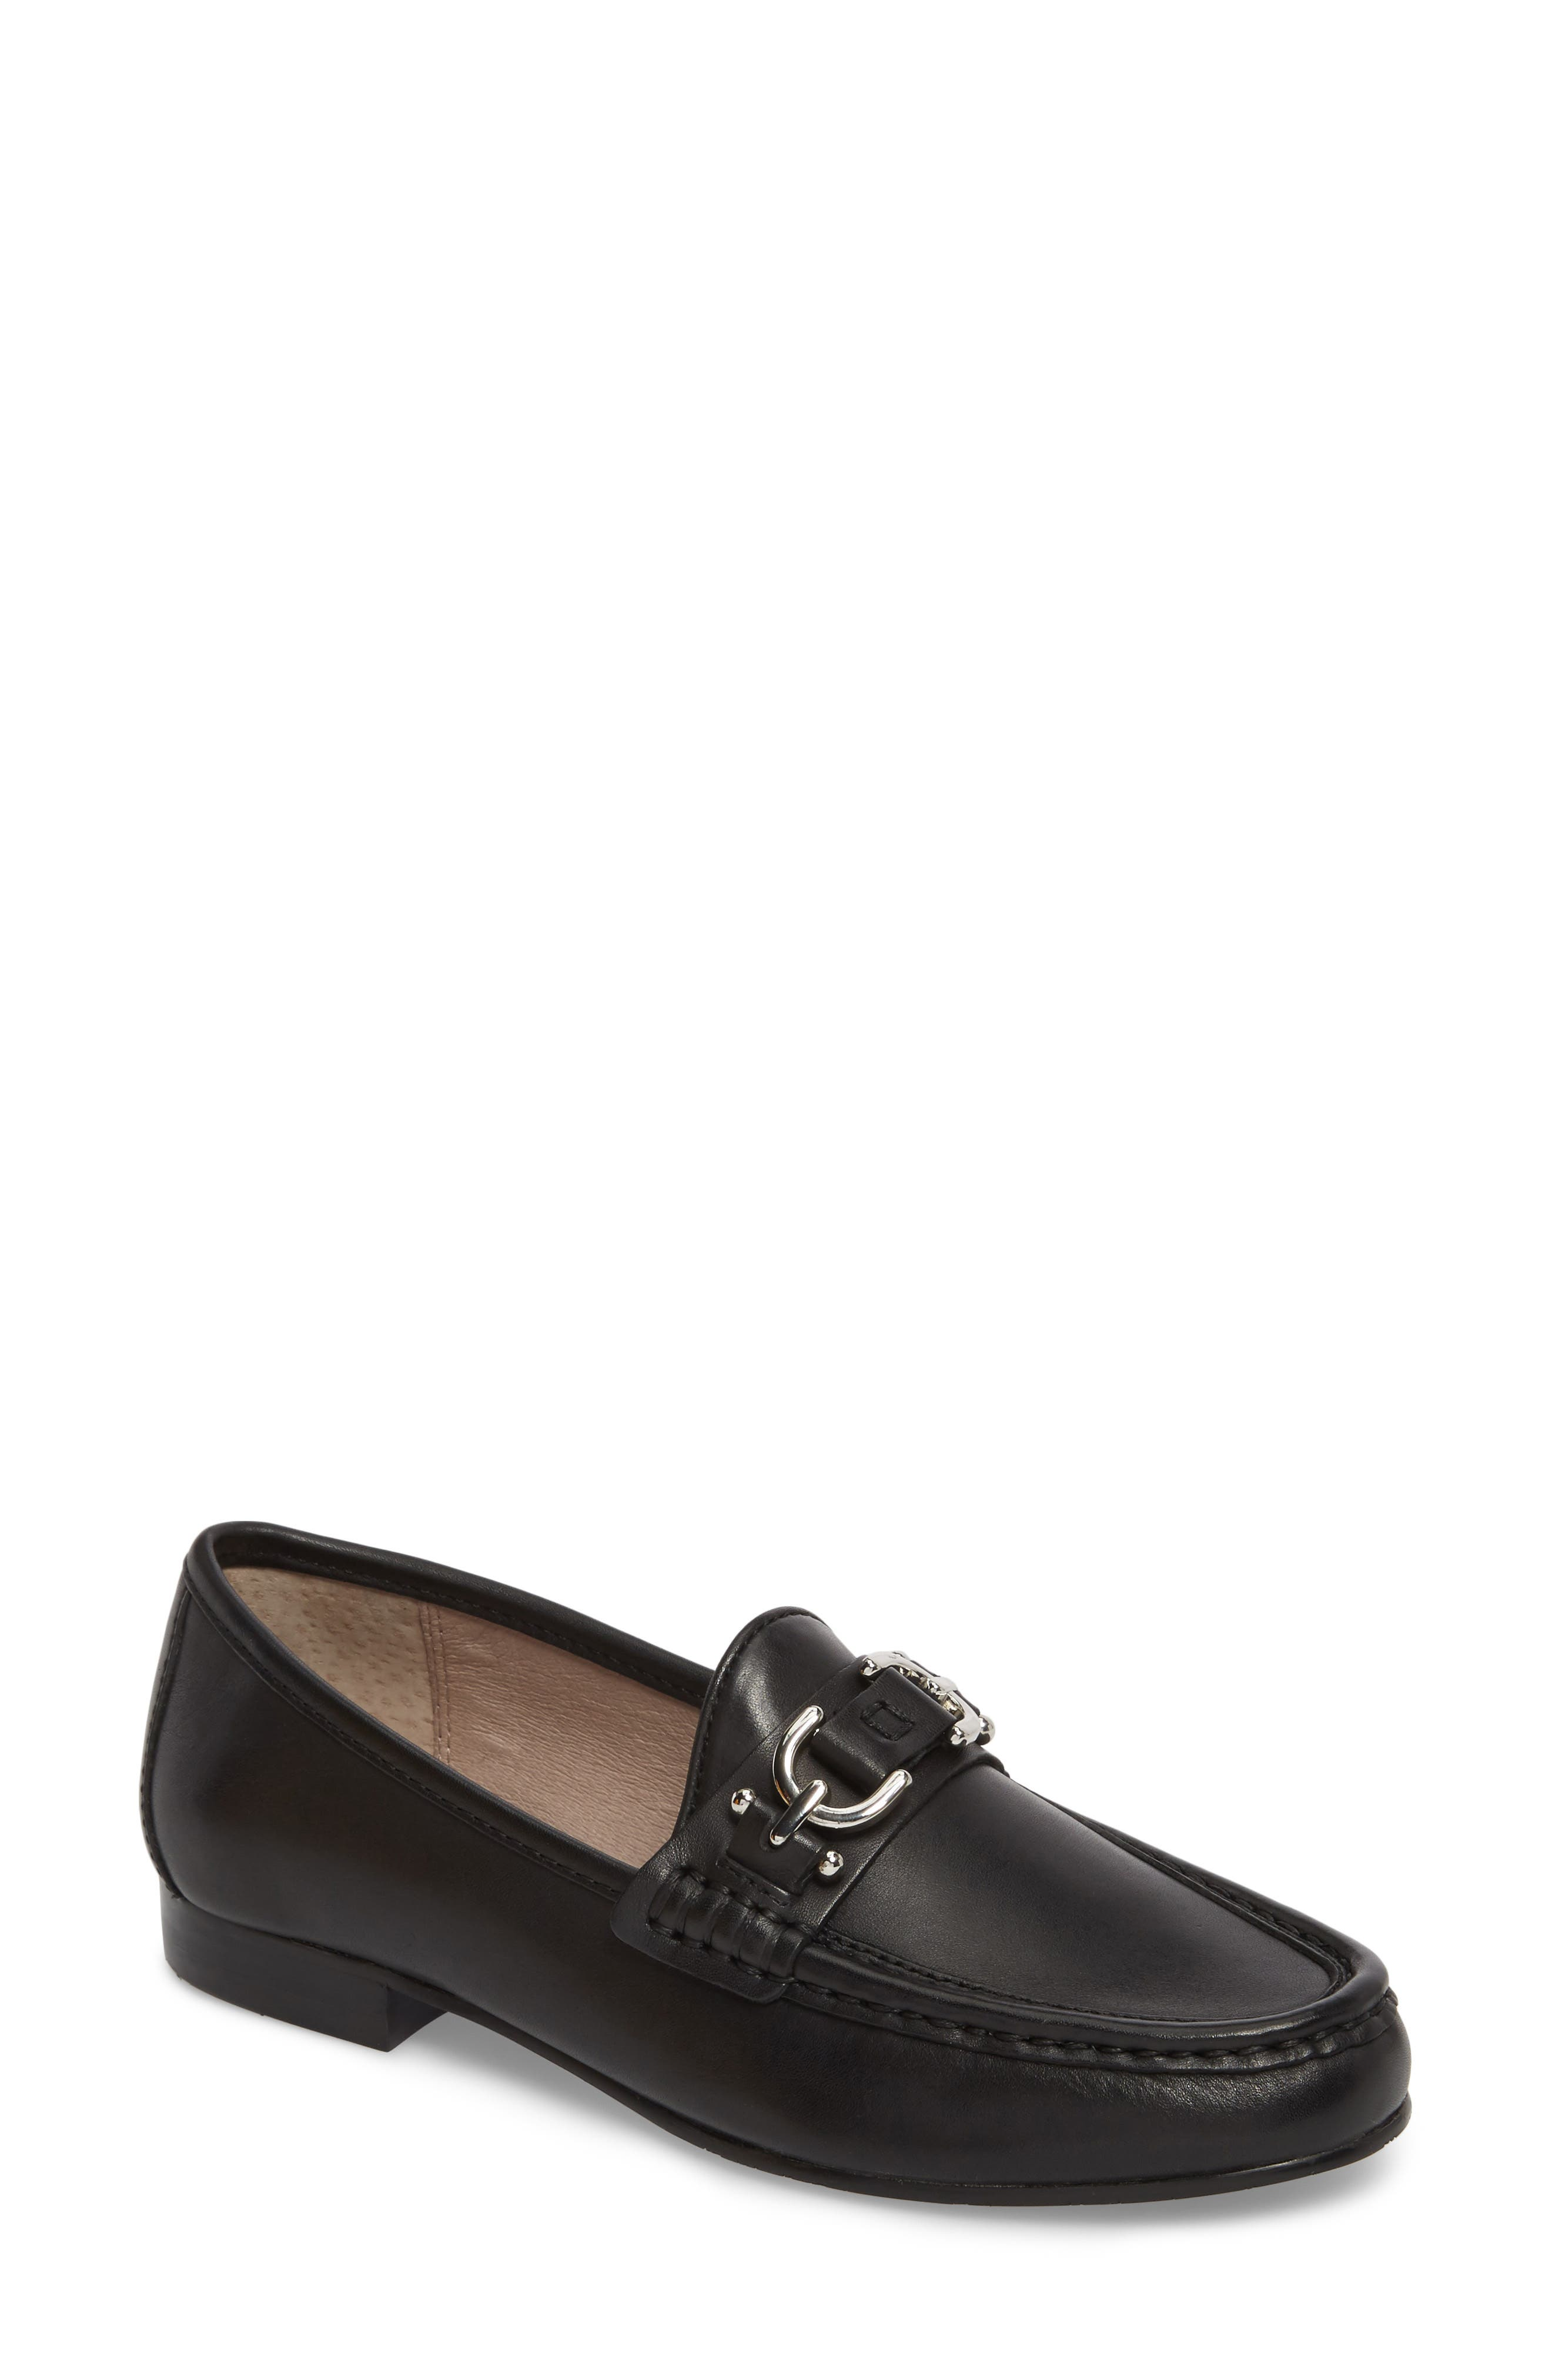 Suzy Loafer,                         Main,                         color, Black Leather